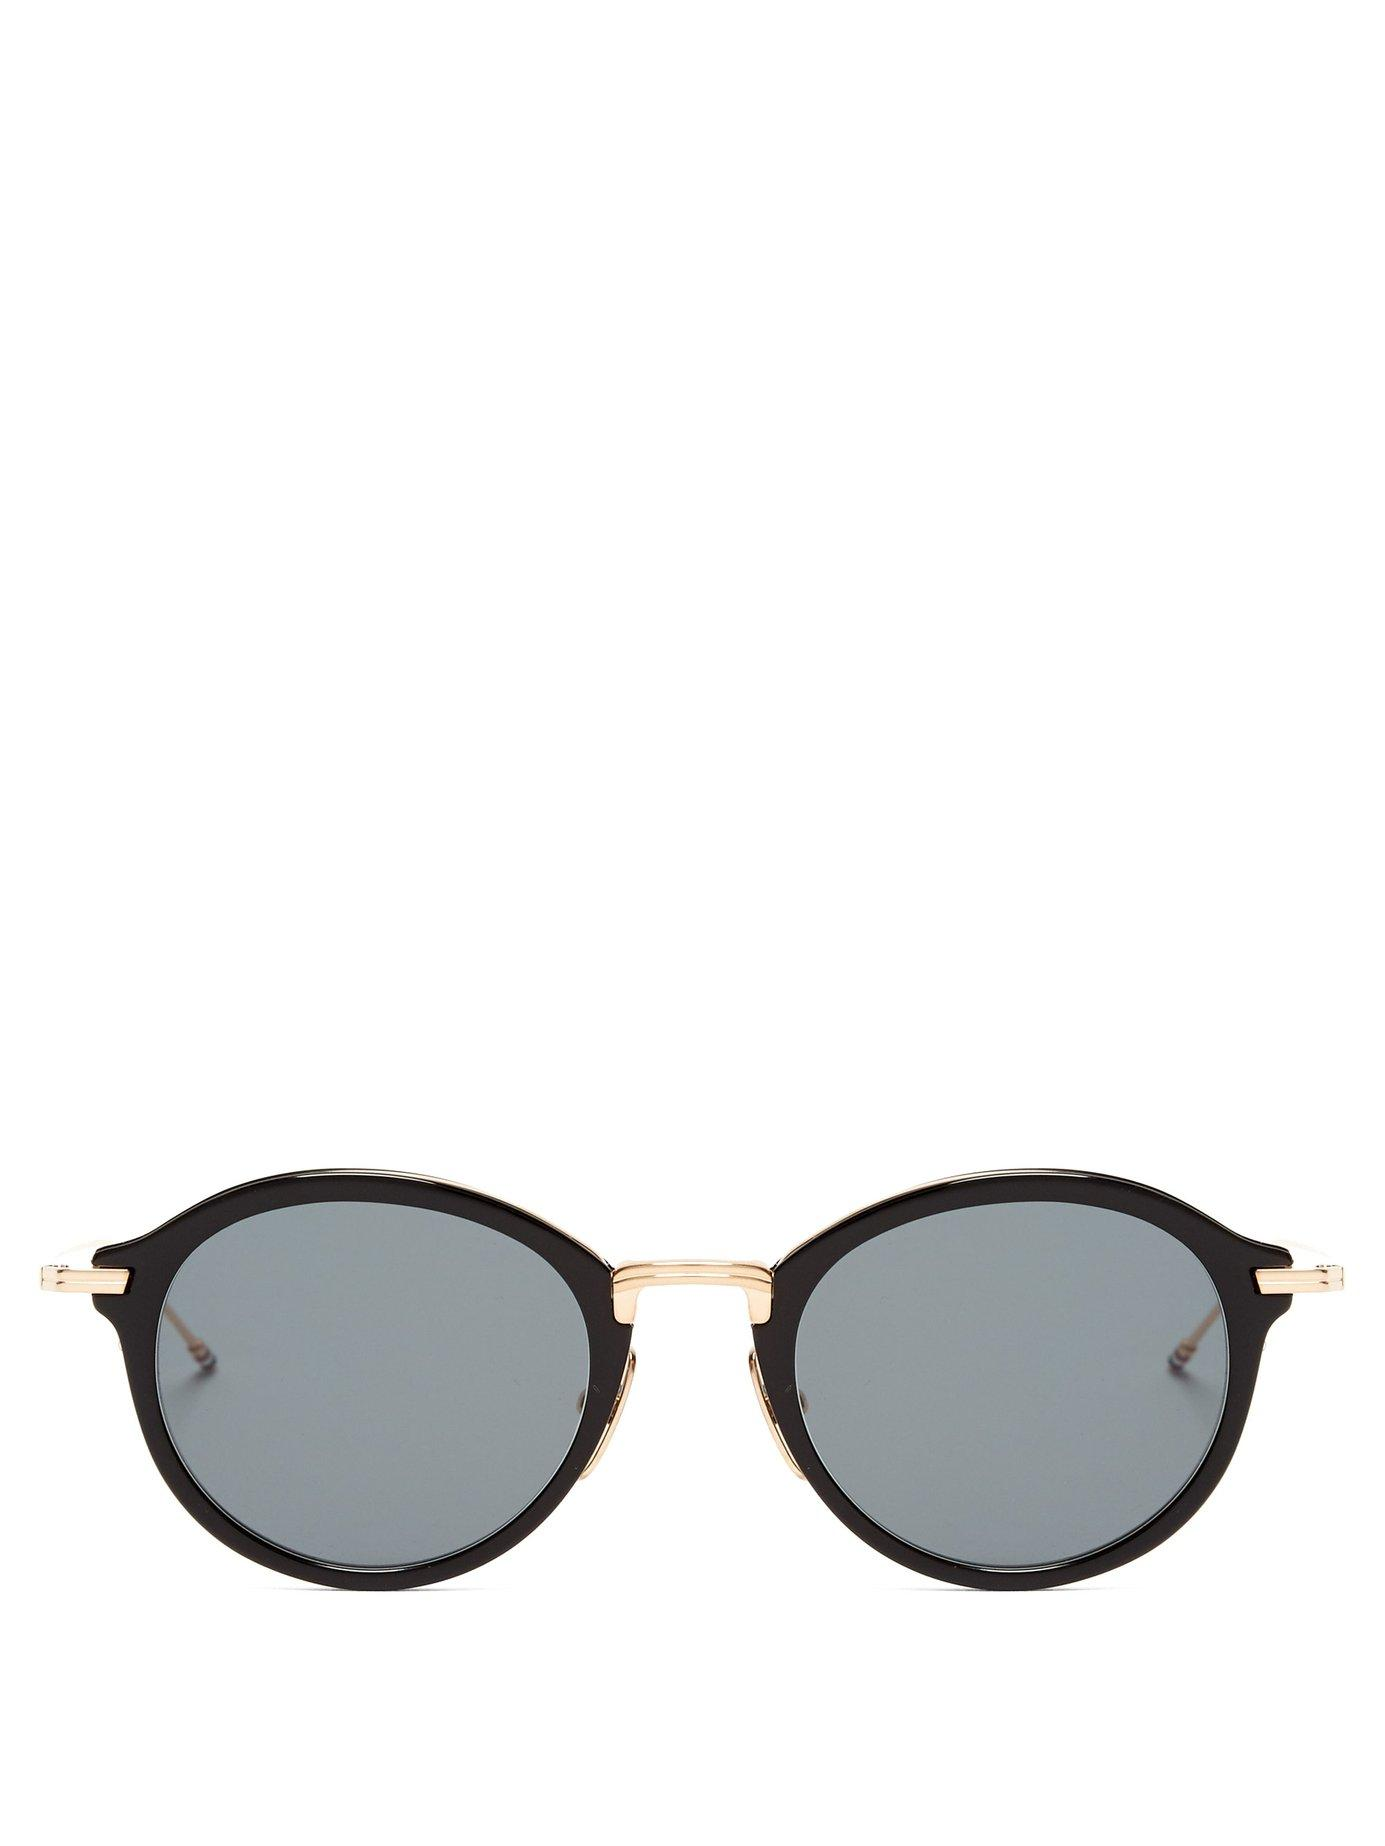 1b522d18283b Lyst - Thom Browne Round Acetate And Metal Sunglasses in Metallic ...